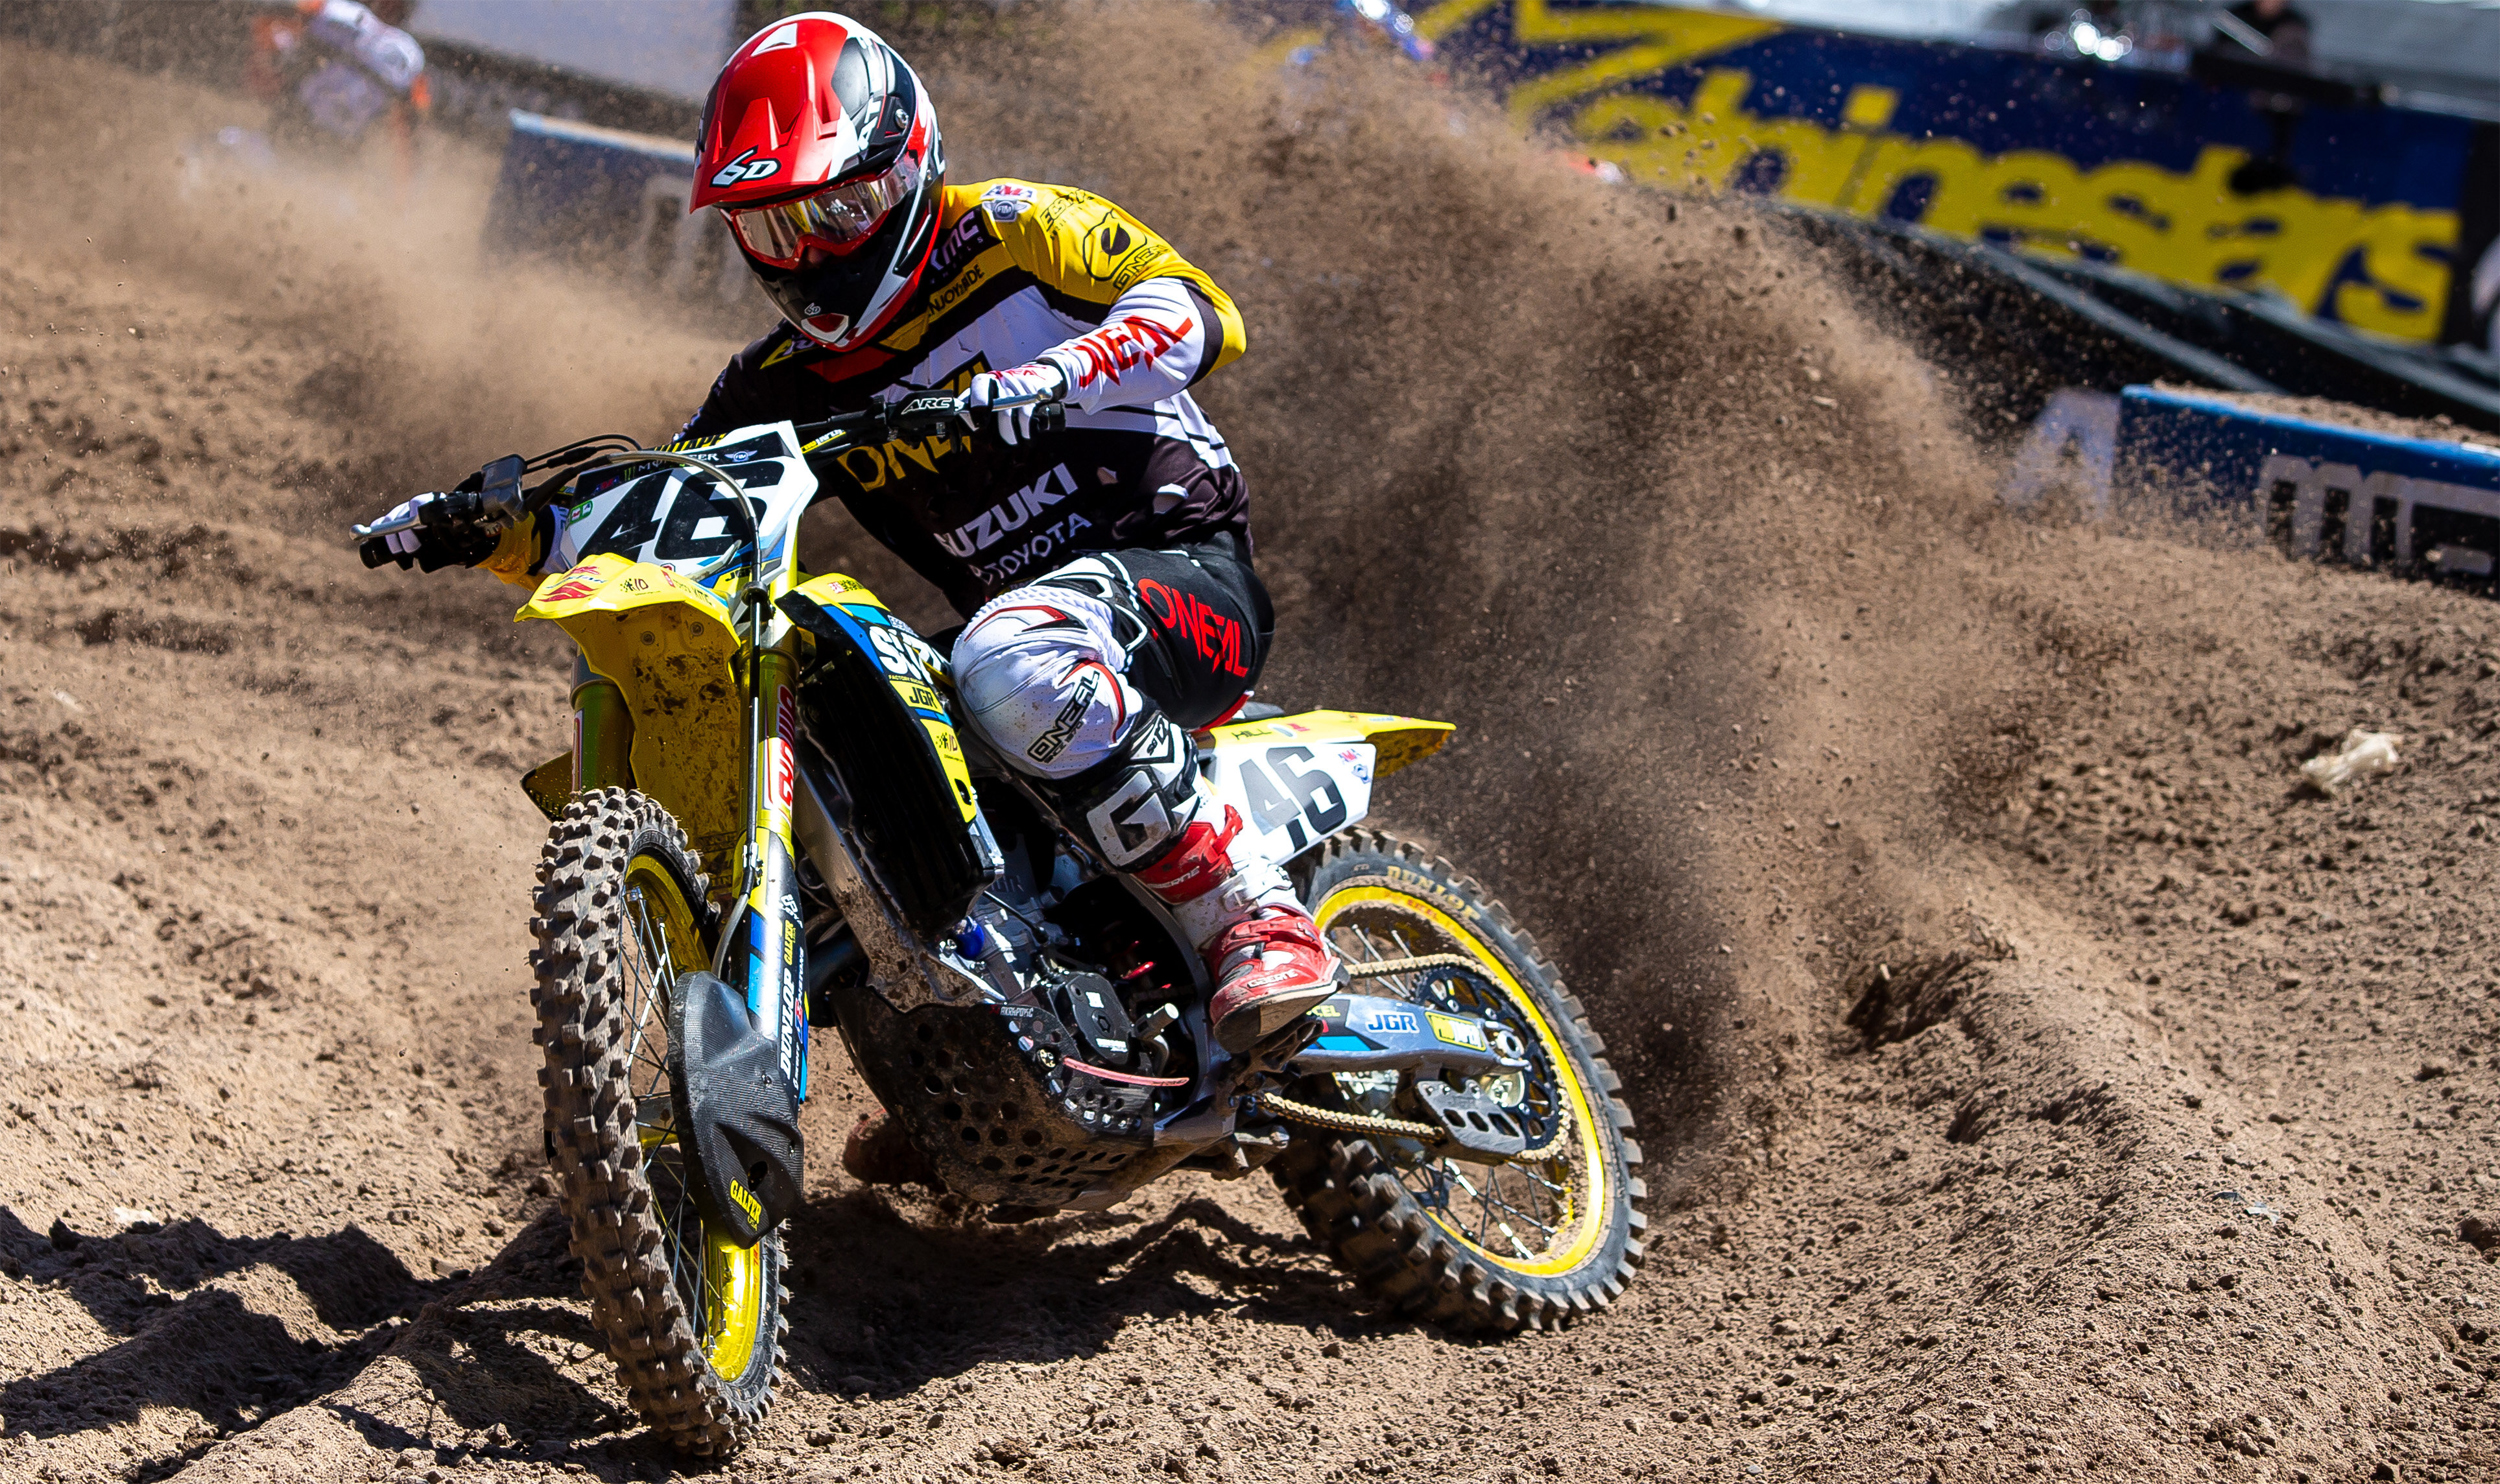 Justin Hill (#46) fought hard at Sam Boyd Stadium to finish out his 450 rookie season - Las Vegas - Monster Energy Supercross